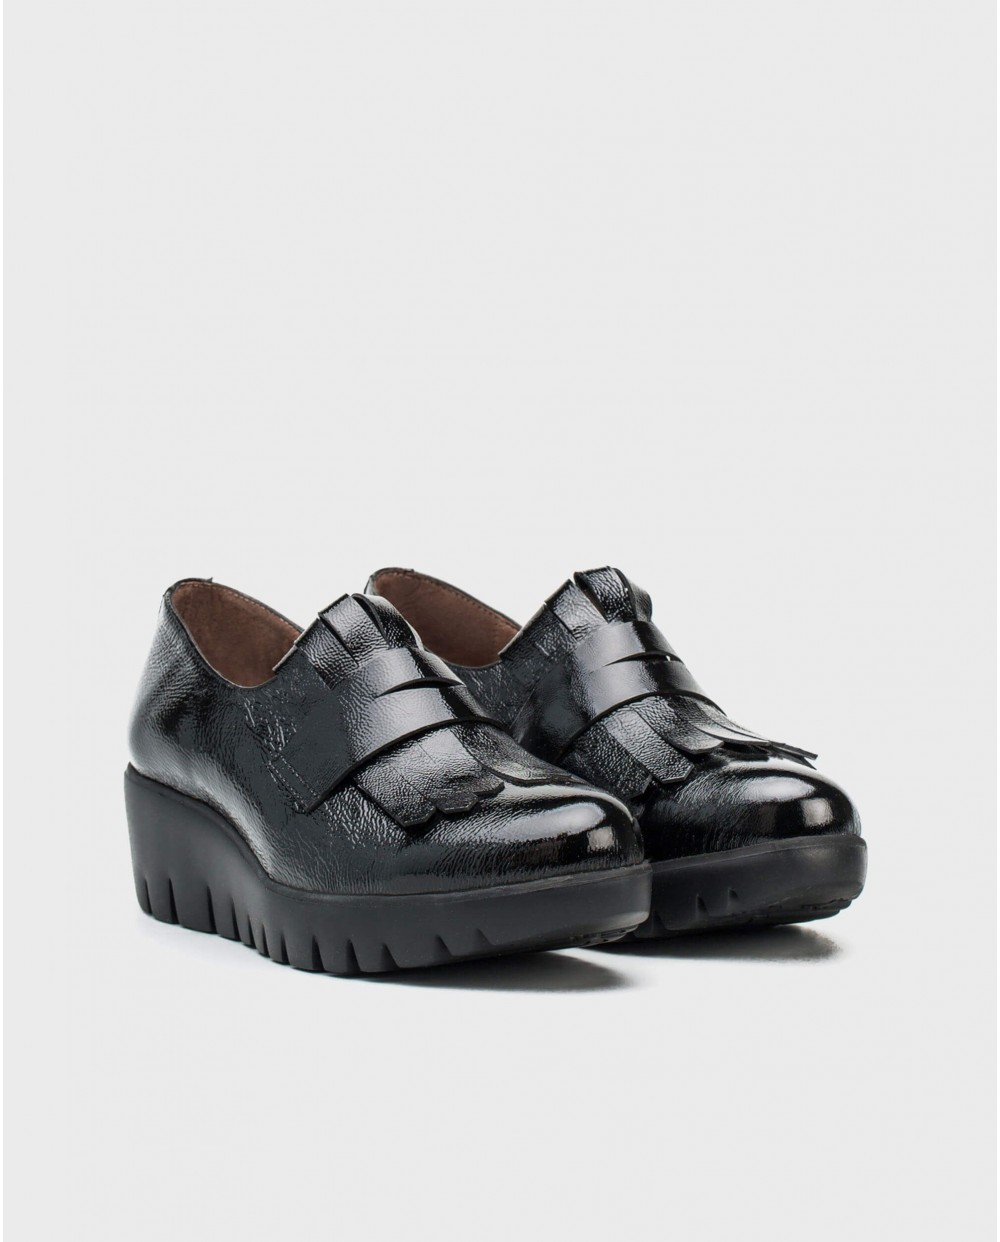 Wonders-Wedges-Patent leather moccasin